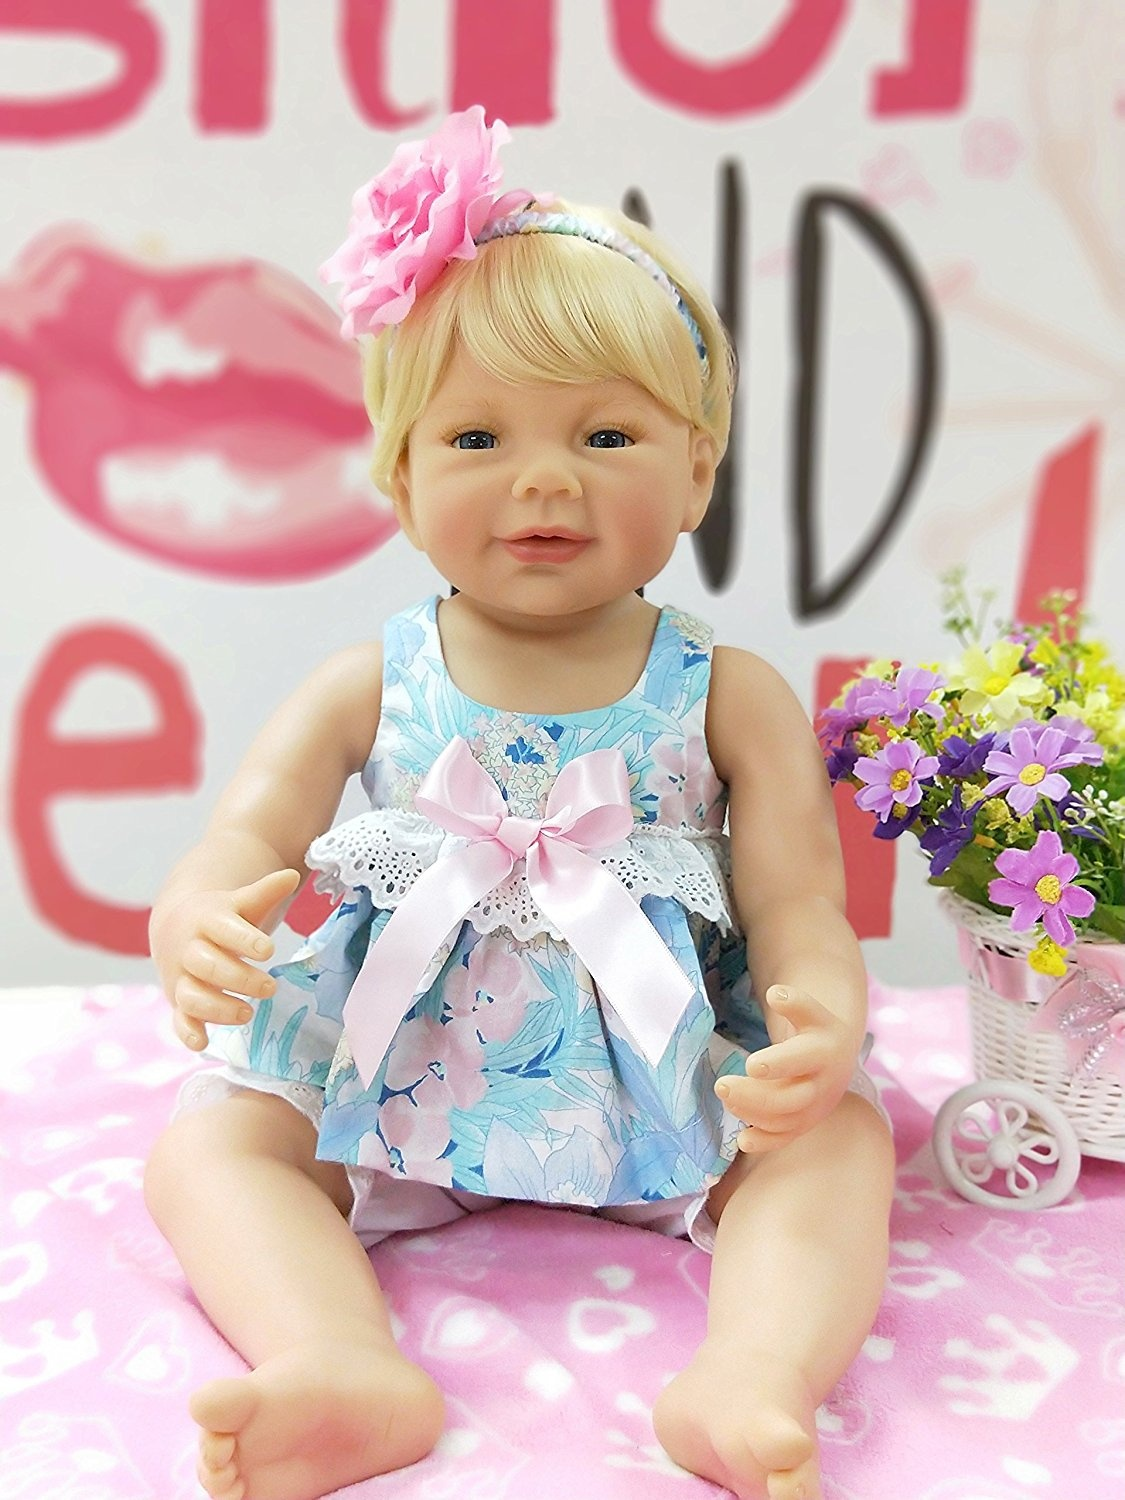 Pursue Baby Washable Hard Vinyl Full body Lifelike Newborn Baby Doll Gloden  Hair Britney, 60cm Real Looking Baby Doll Alive (No Sex)